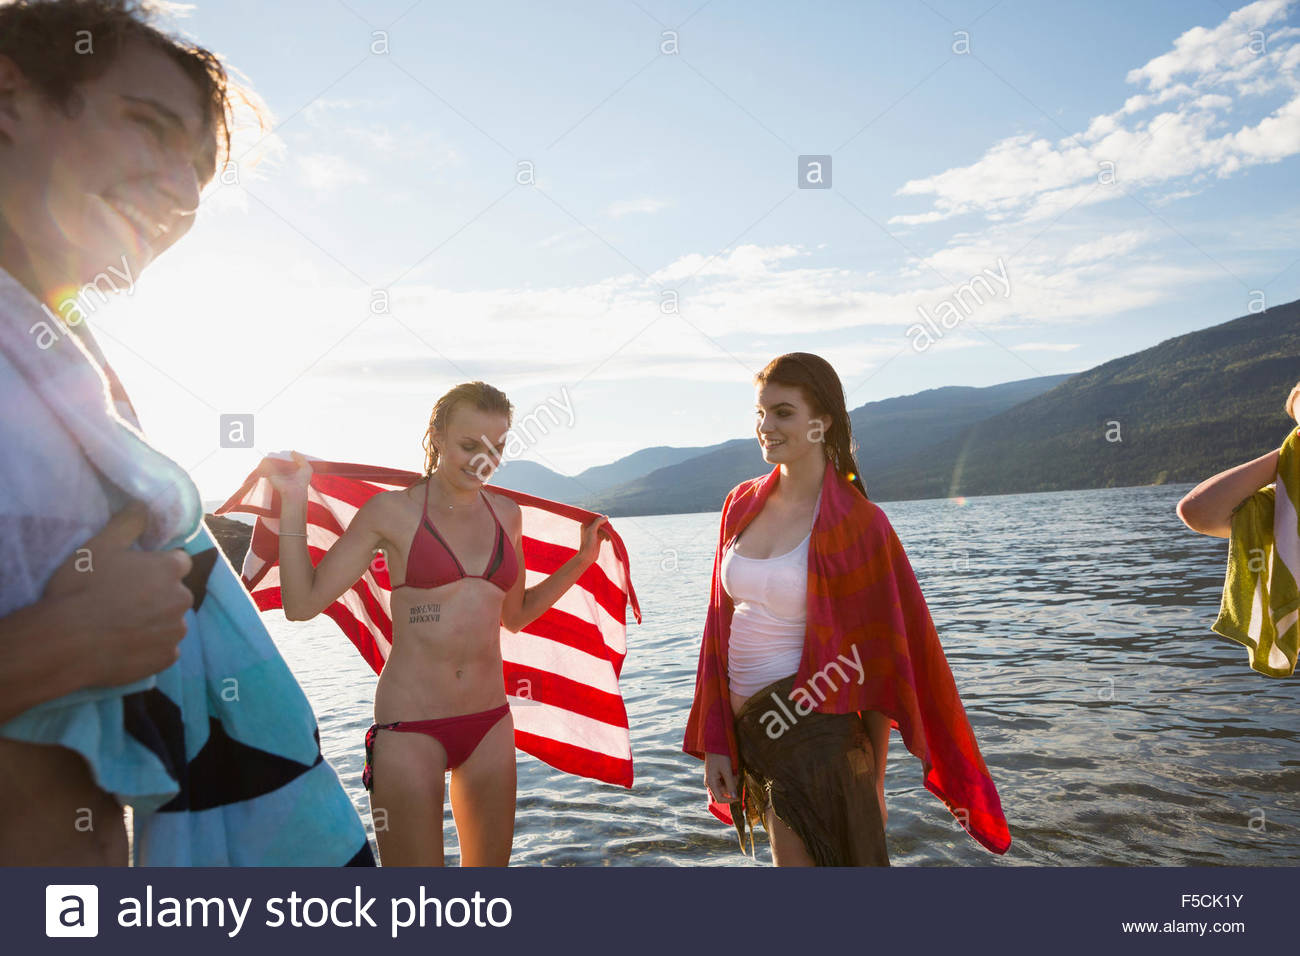 Young friends drying off at lake - Stock Image